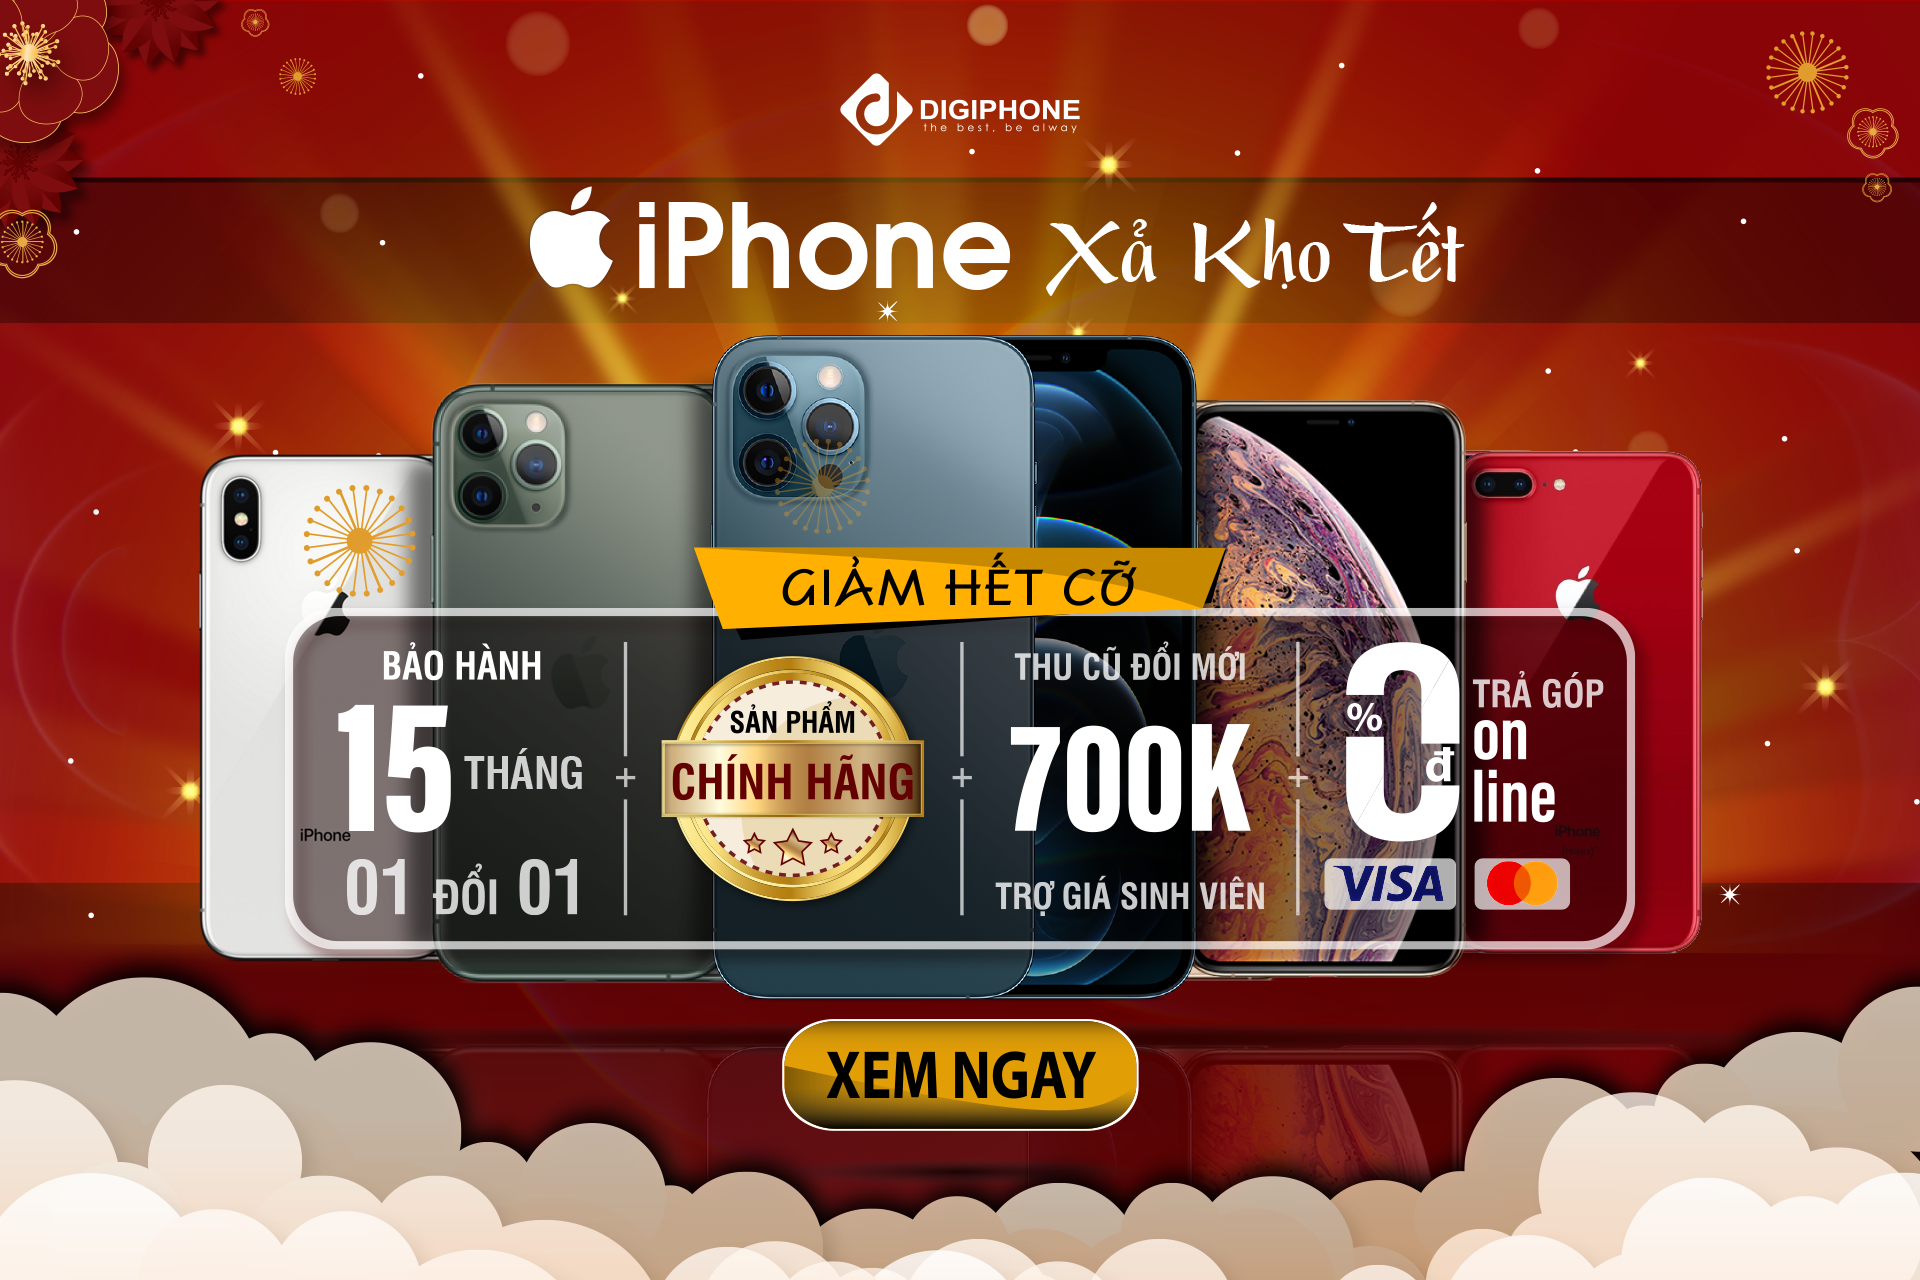 Điện thoại iPhone Digiphone